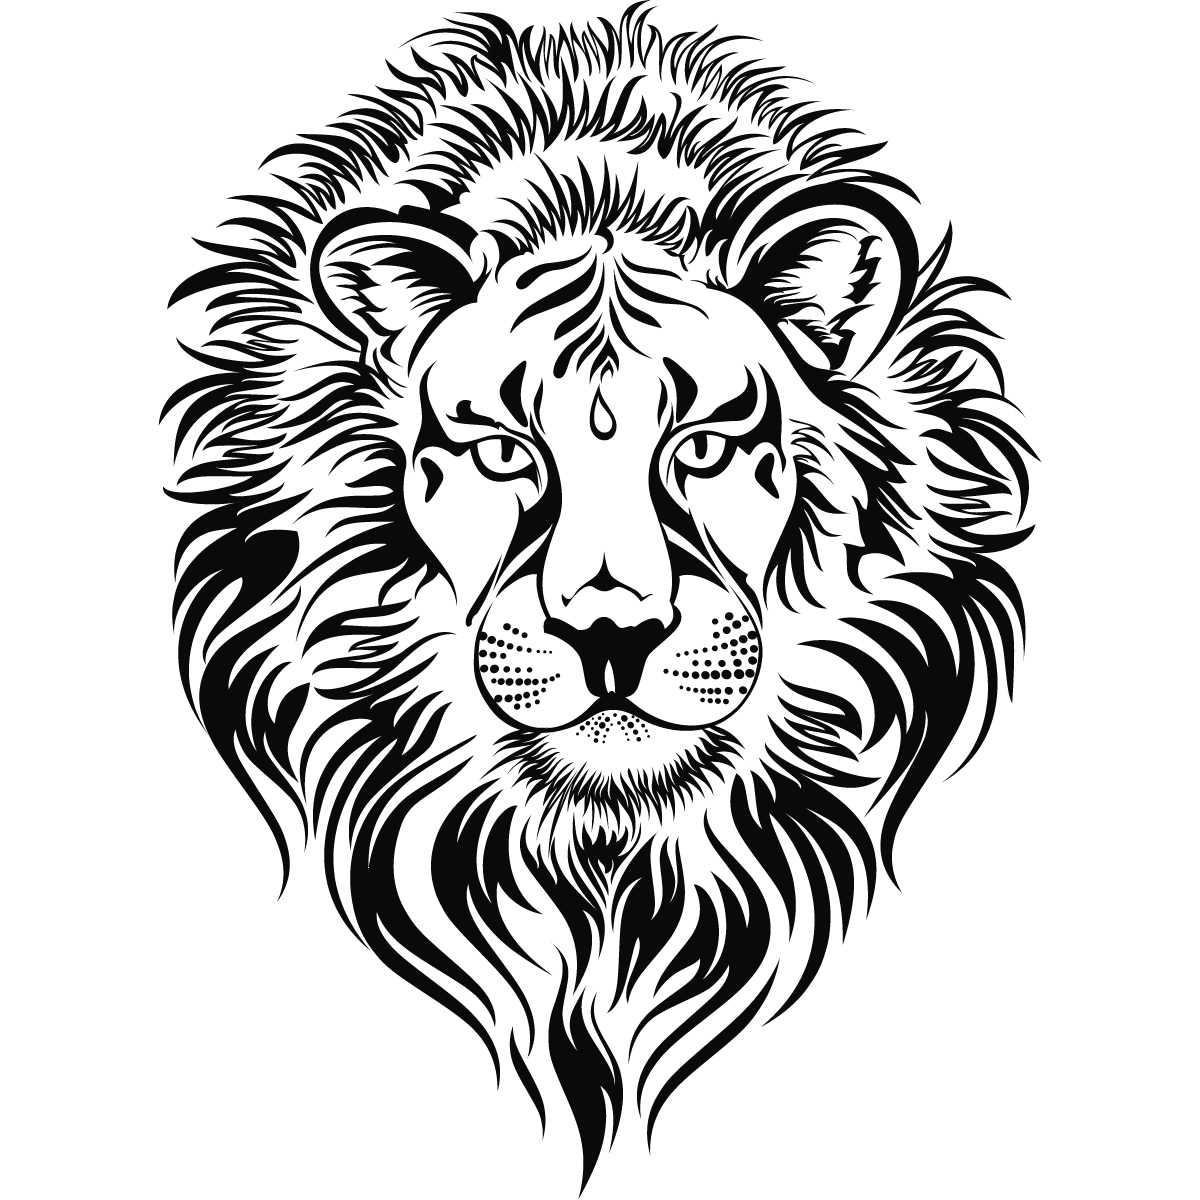 Lion Head Clipart Black And White - ClipArt Best